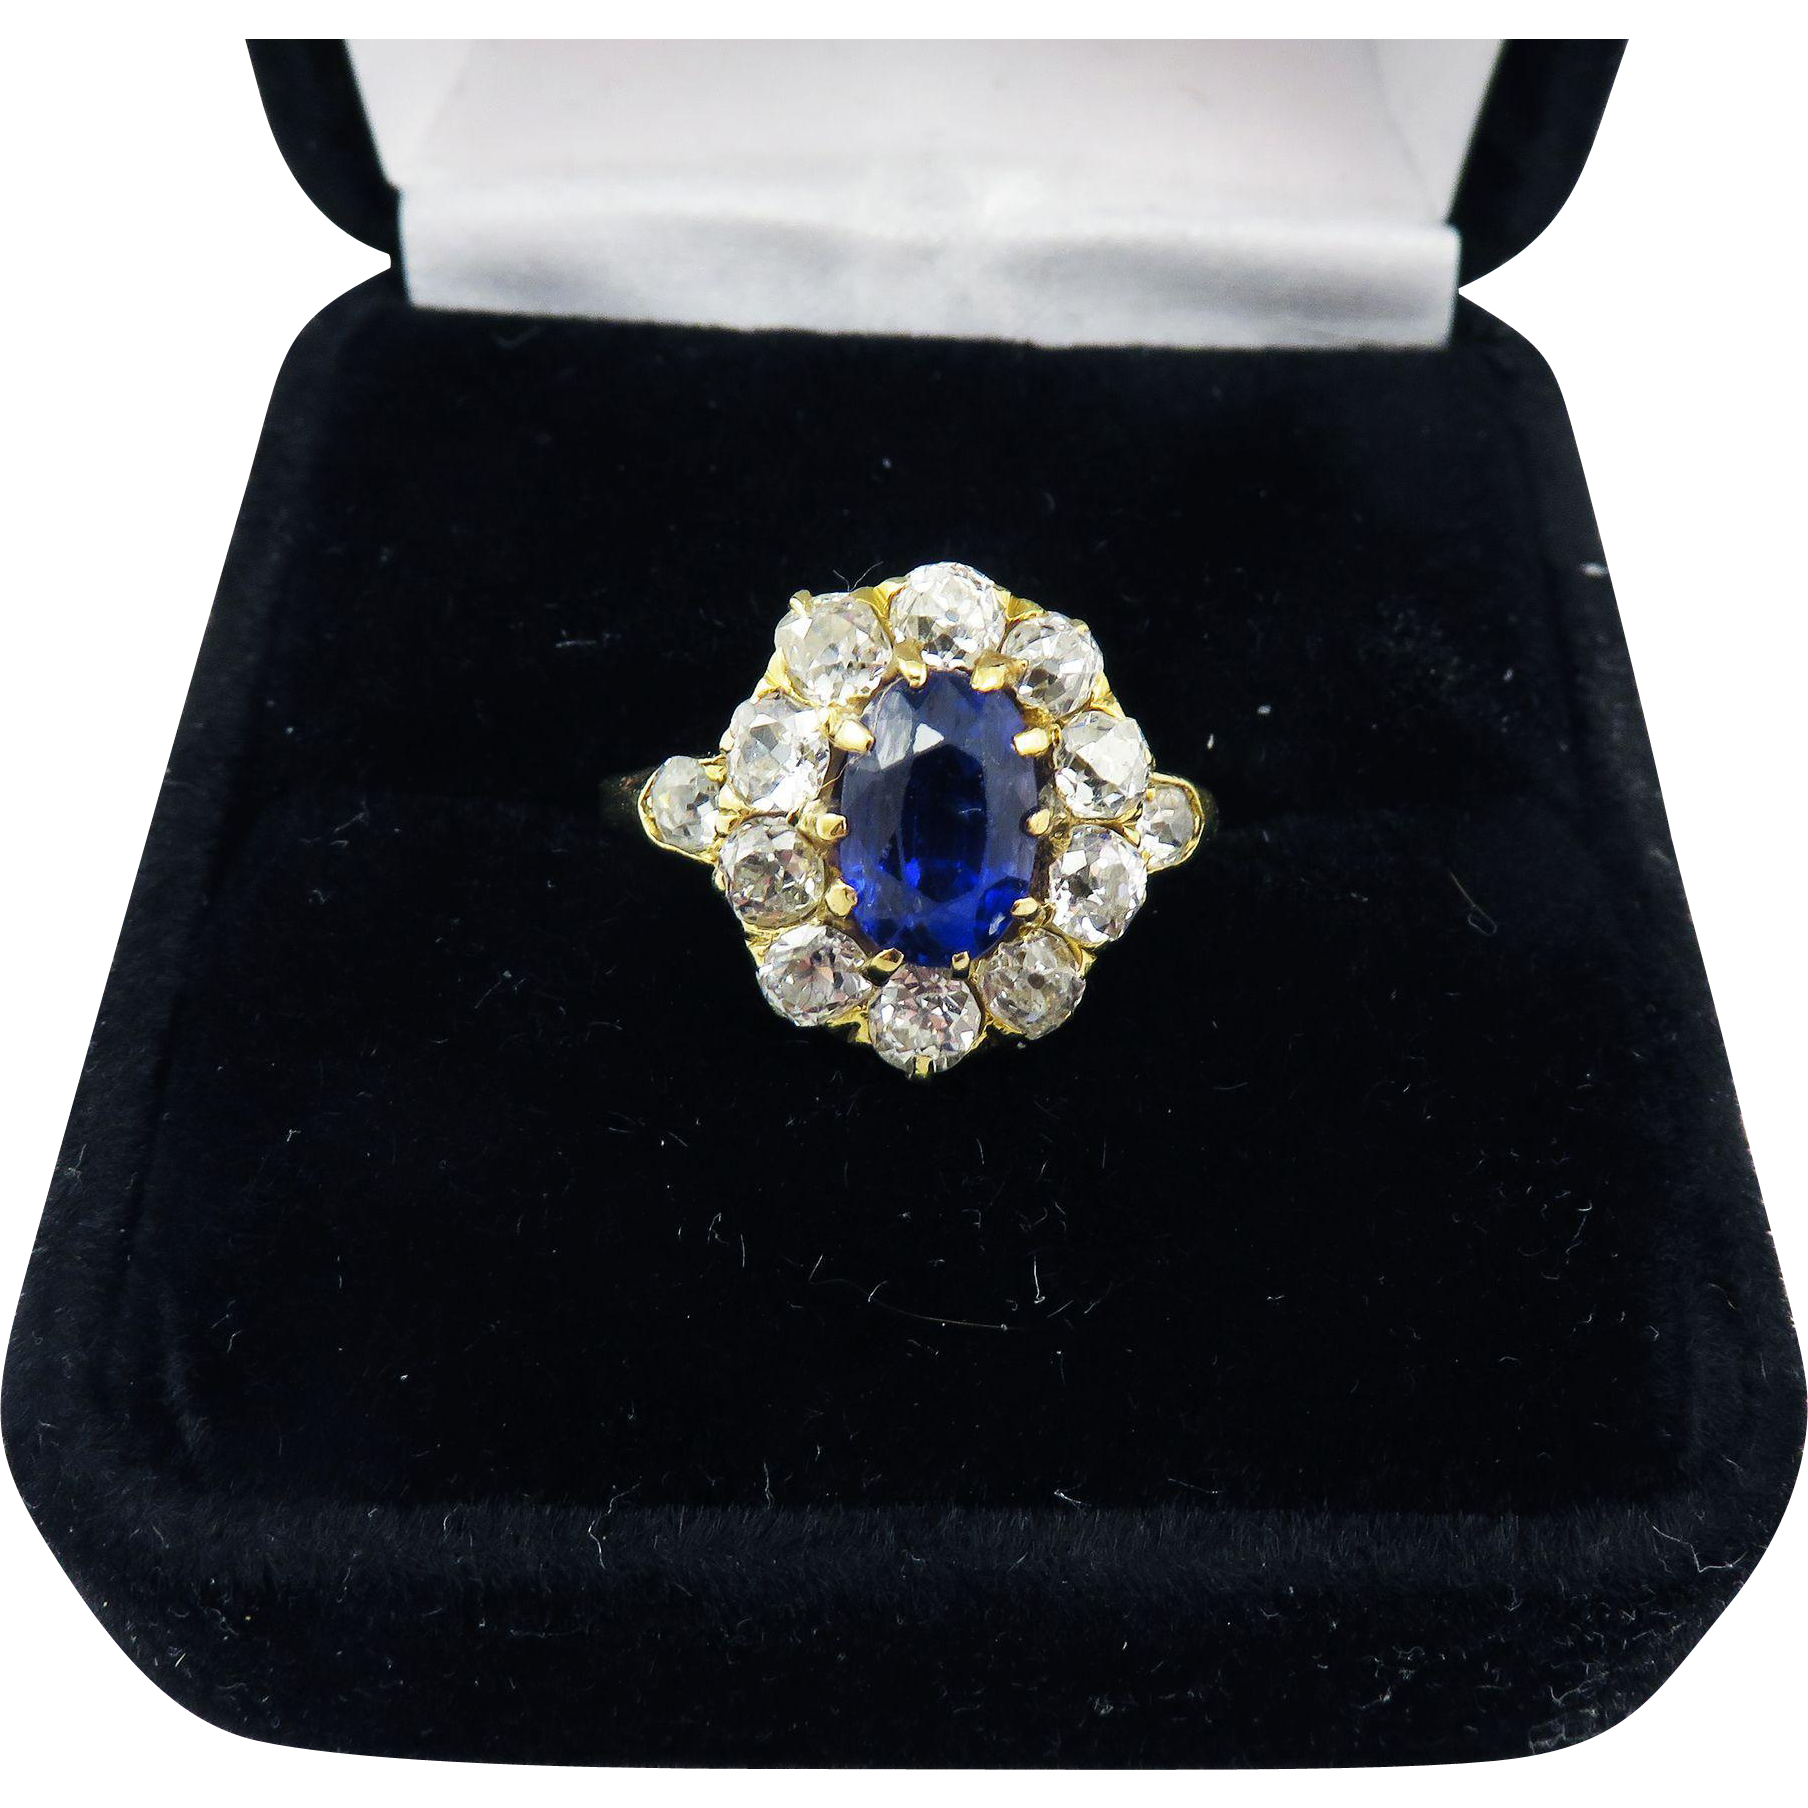 MAGNIFICENT 2.61 Ct. TW Untreated Color Change Sapphire/OMC Diamond/18k Ring w/$7,000.00 GIA Appraisal, c.1890!